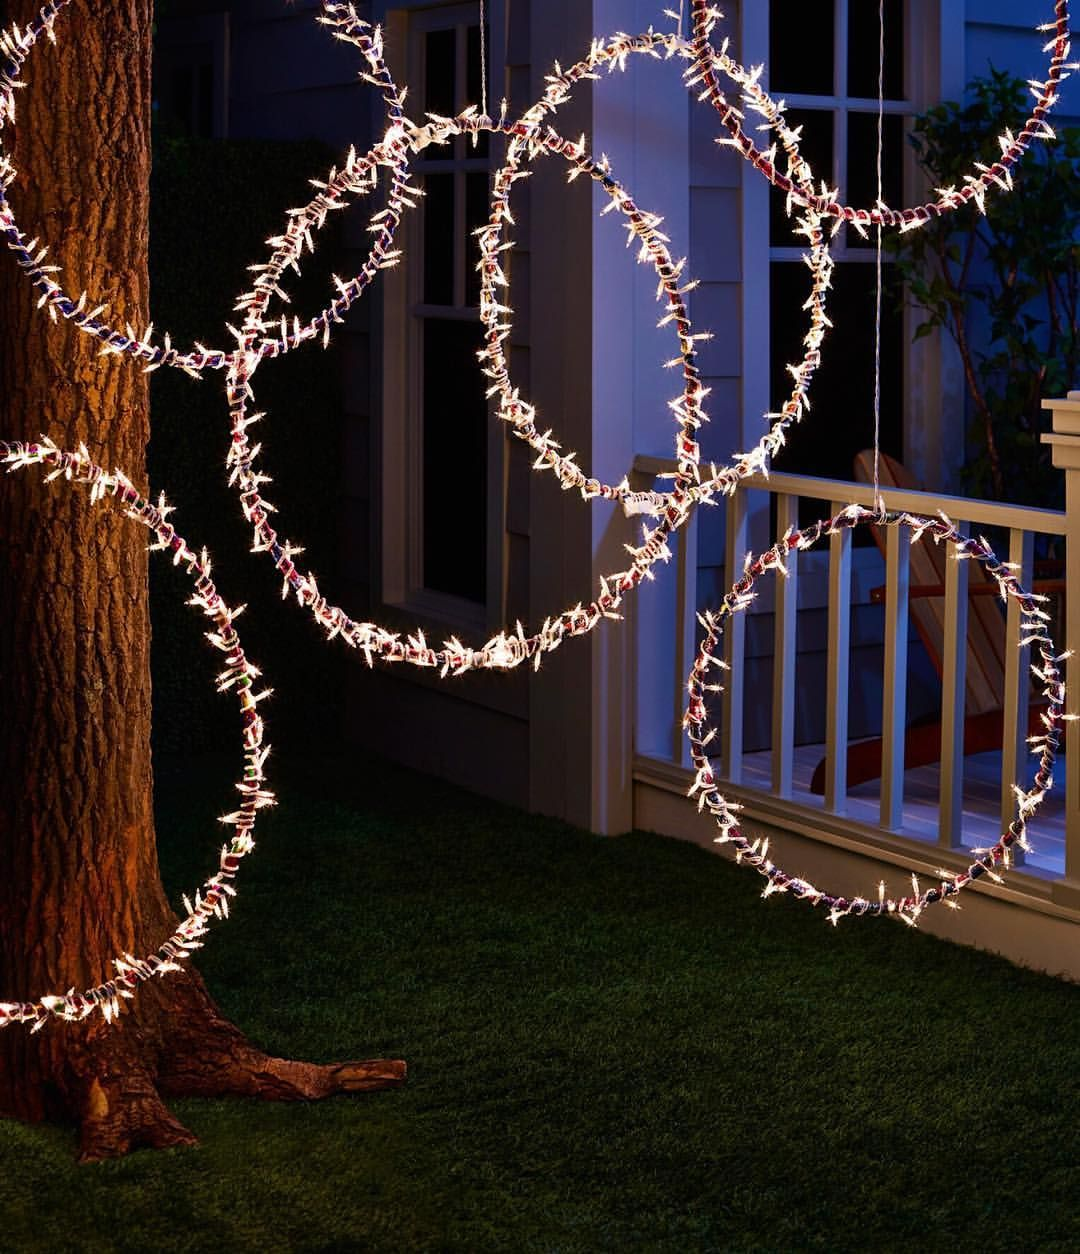 Instant backyard ambiance: just add hula hoops!  DIY Recreate this magical scene in your own yard by wrapping string lights around a few hula hoops and hanging them in a tree—and don't forget the extension cord! Shop the goods through the link in our profile.